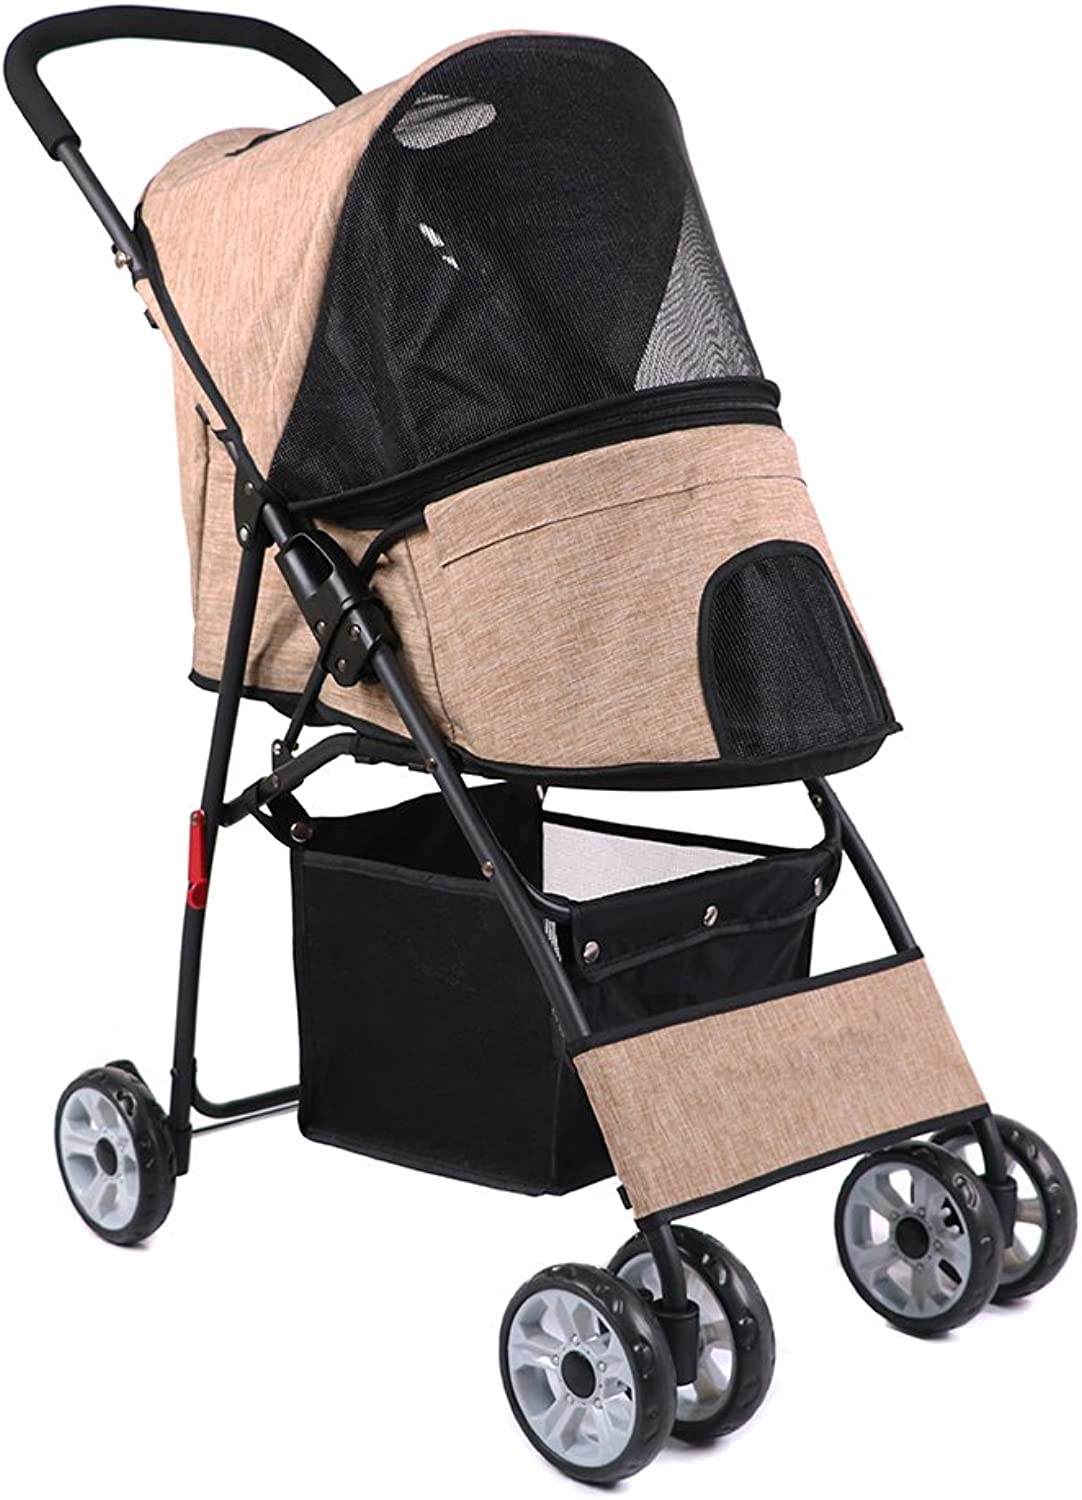 IREENUO Pet Travel Stroller Cat Dog 4 Wheels 360 Degree redatable Easy Assemble LightWeight Durable Pet Trolley Puppy Foldable Carrier Suitable for 20 kg (Khaki)